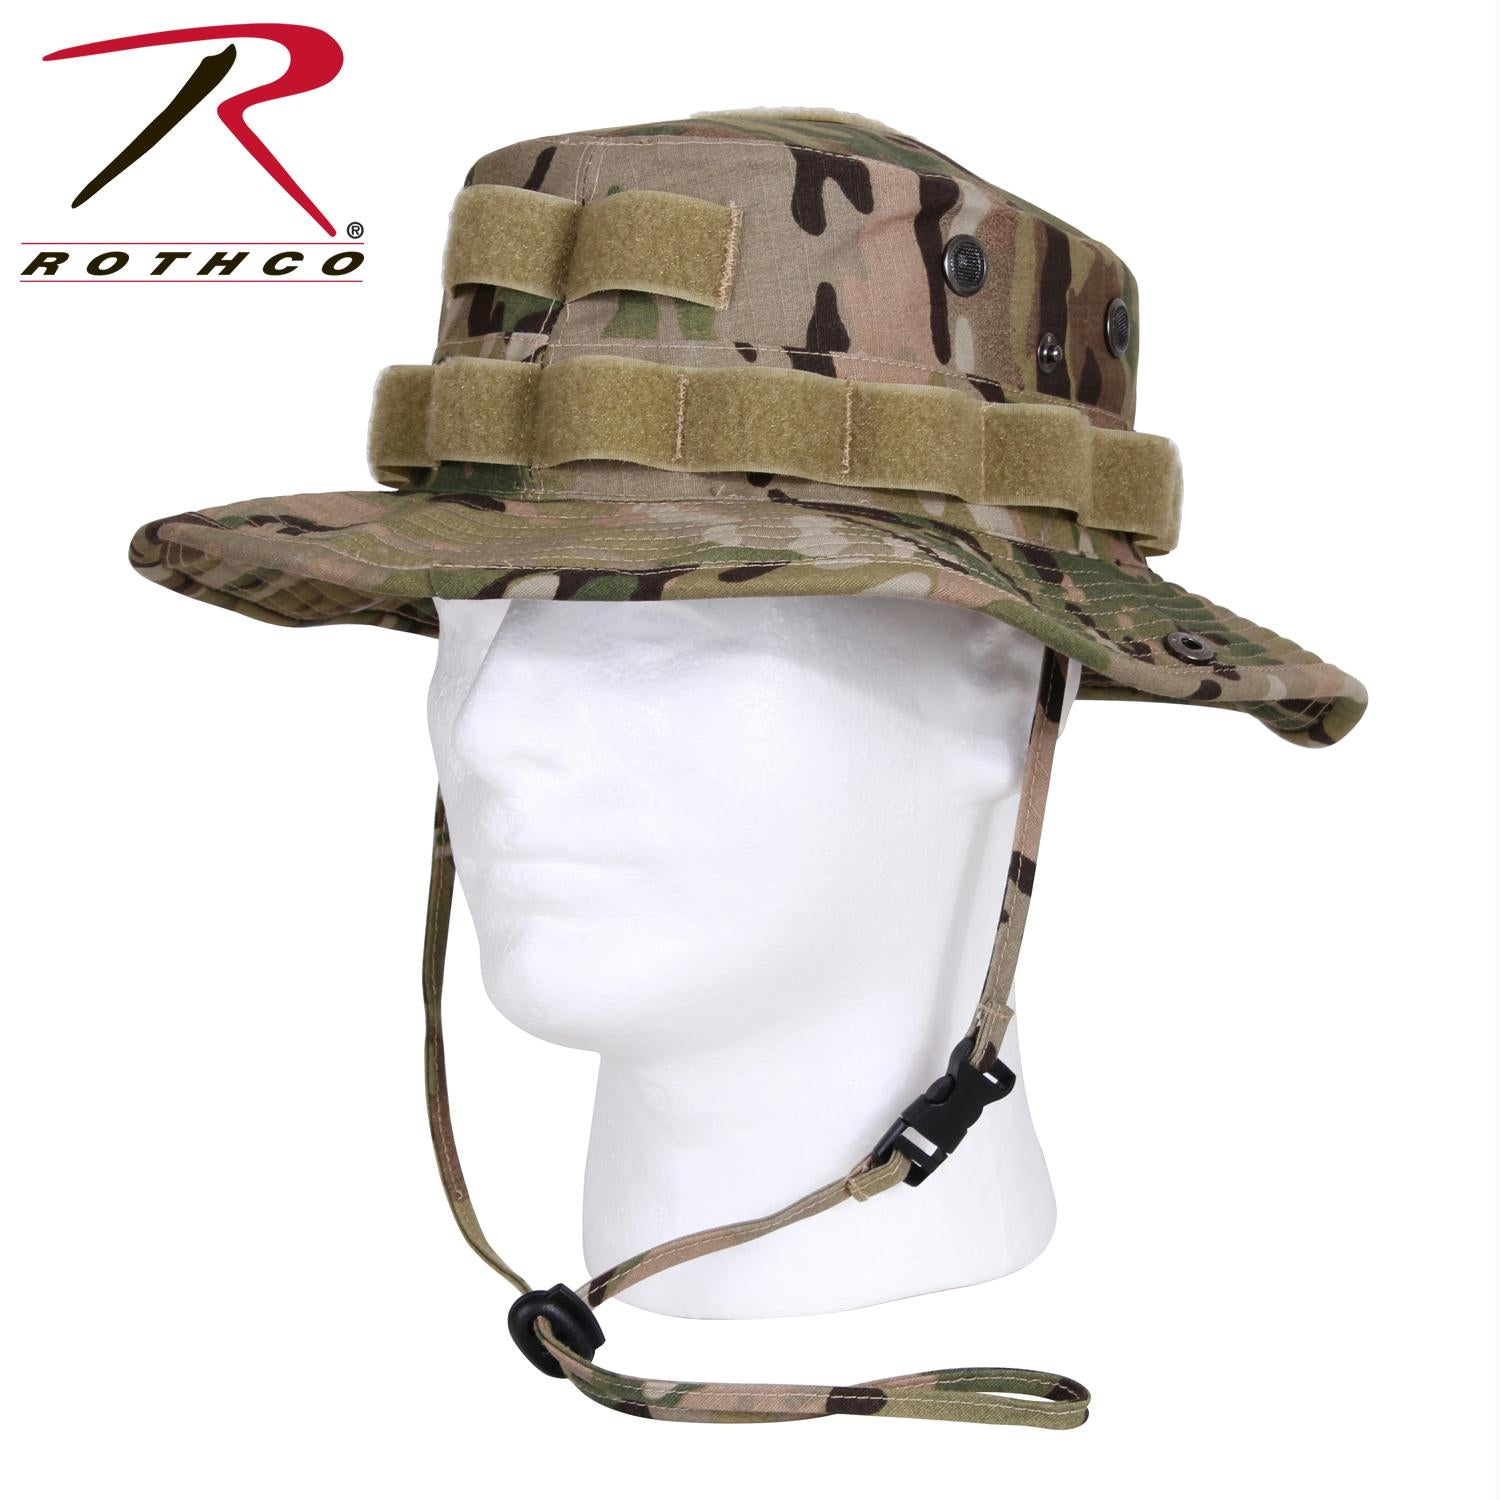 Rothco Tactical Boonie Hat - MultiCam / 7 1/2